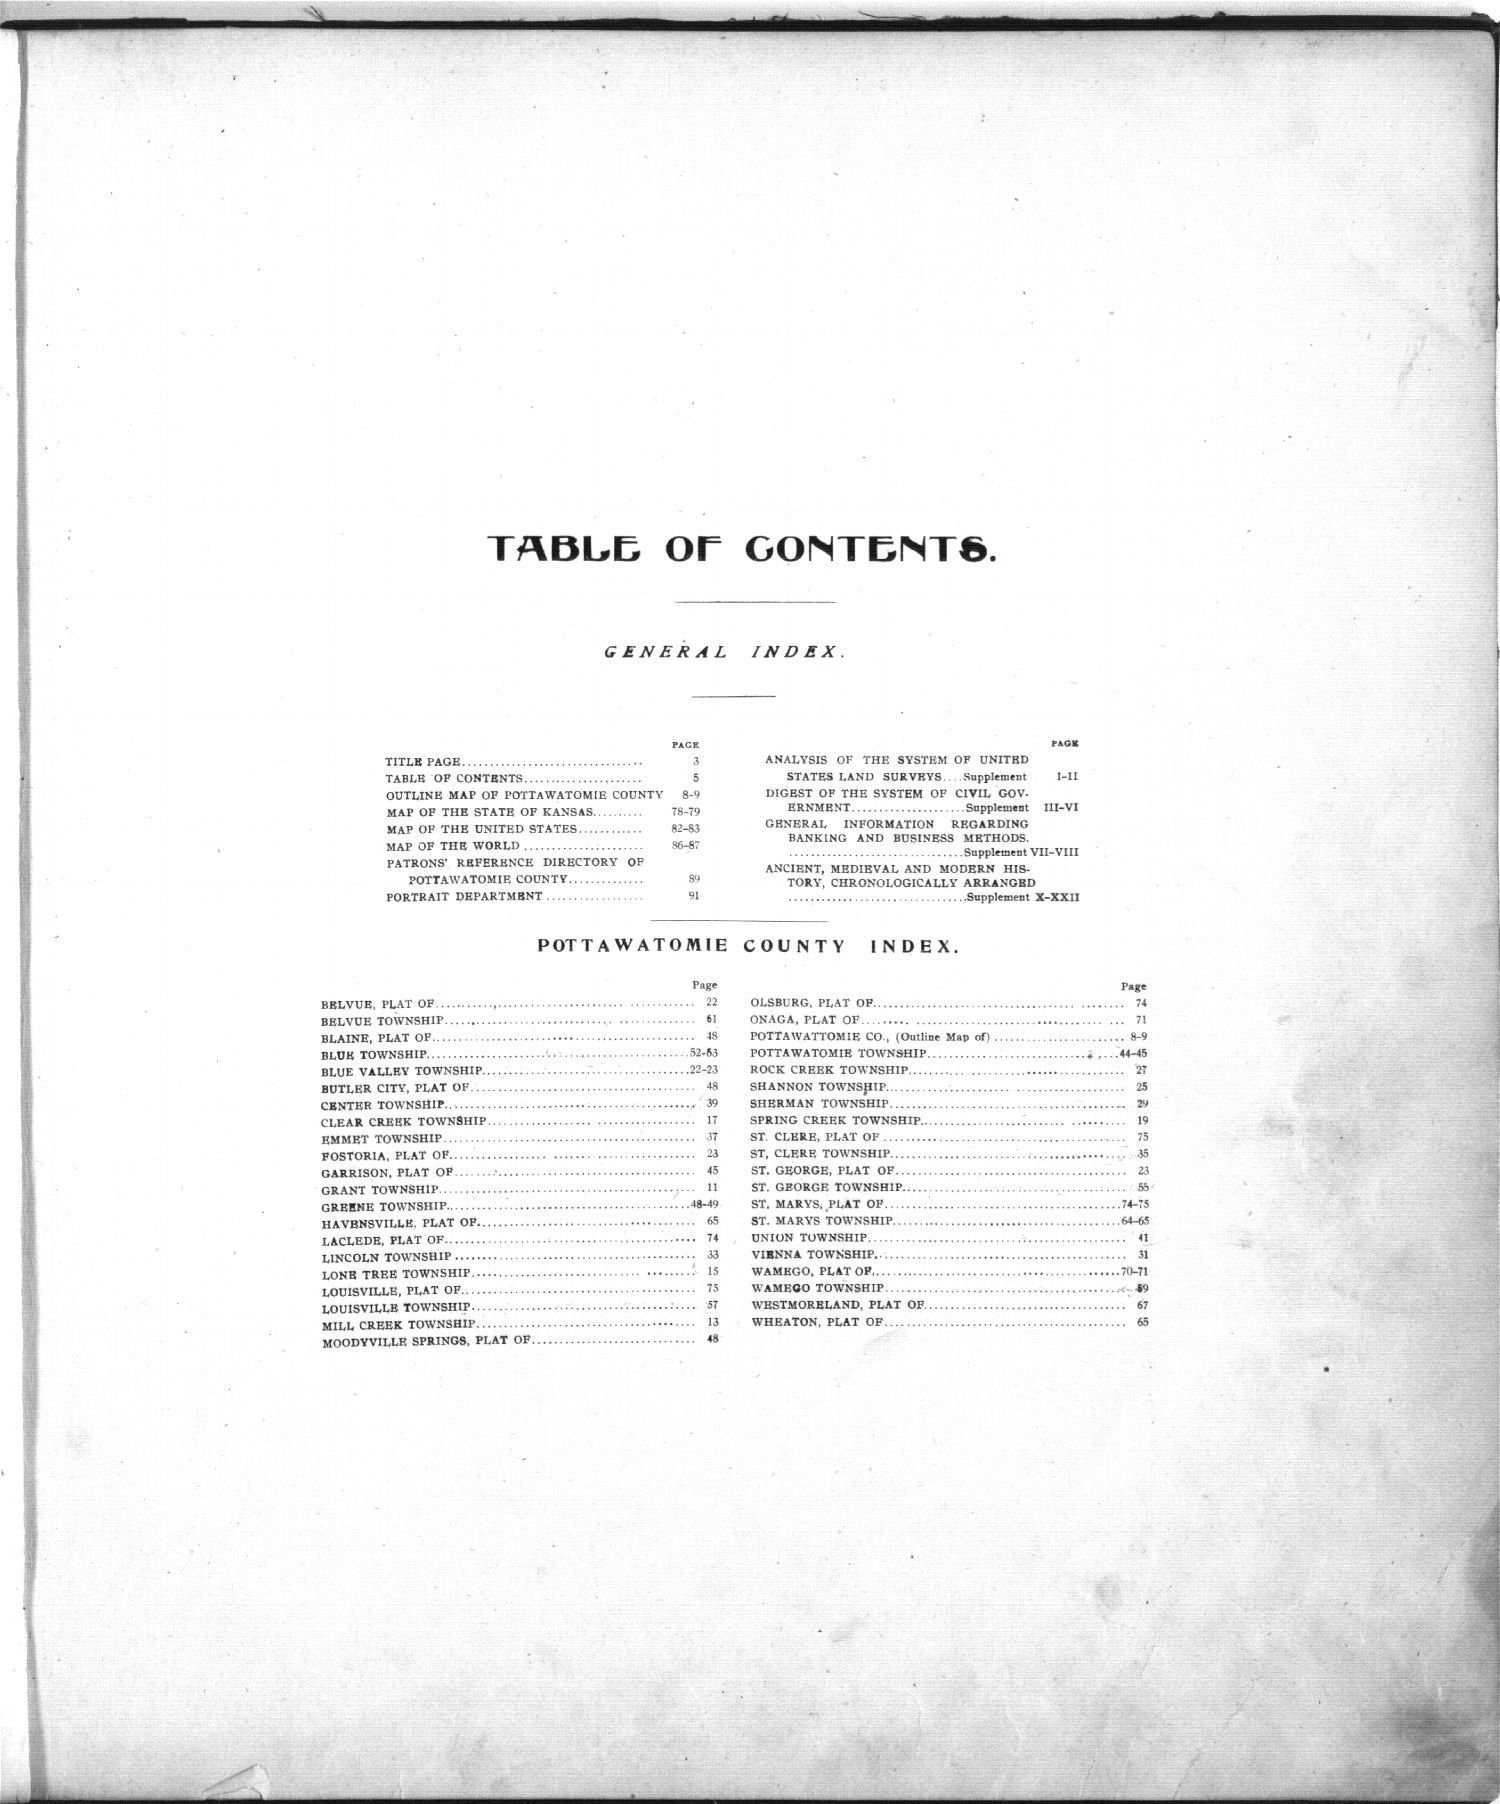 Standard atlas of Pottawatomie County, Kansas - Table of Contents